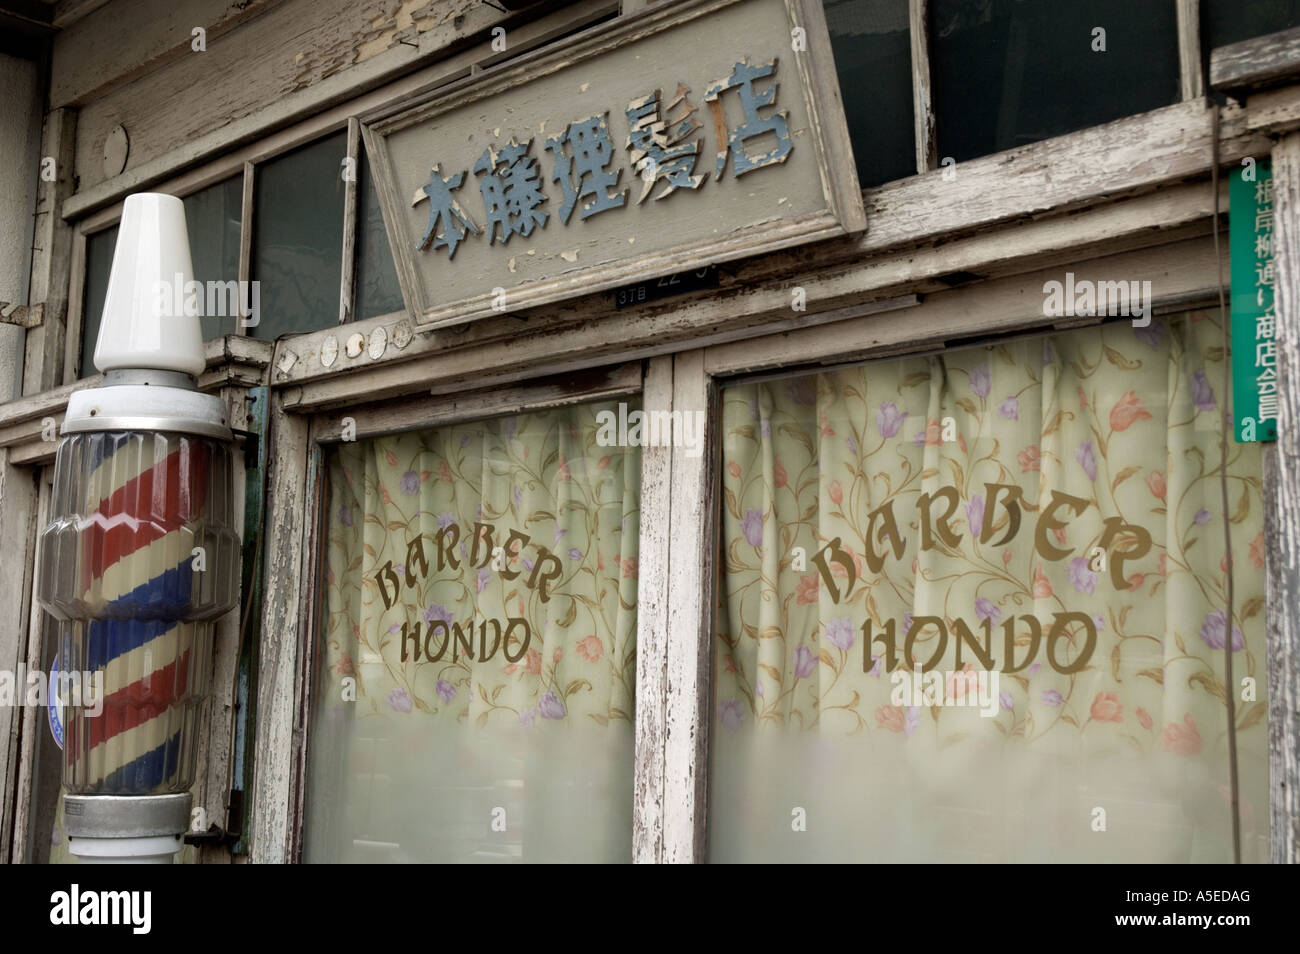 Old barber shop window - The Window Of An Old Barber Shop In Toyko Japan Stock Image